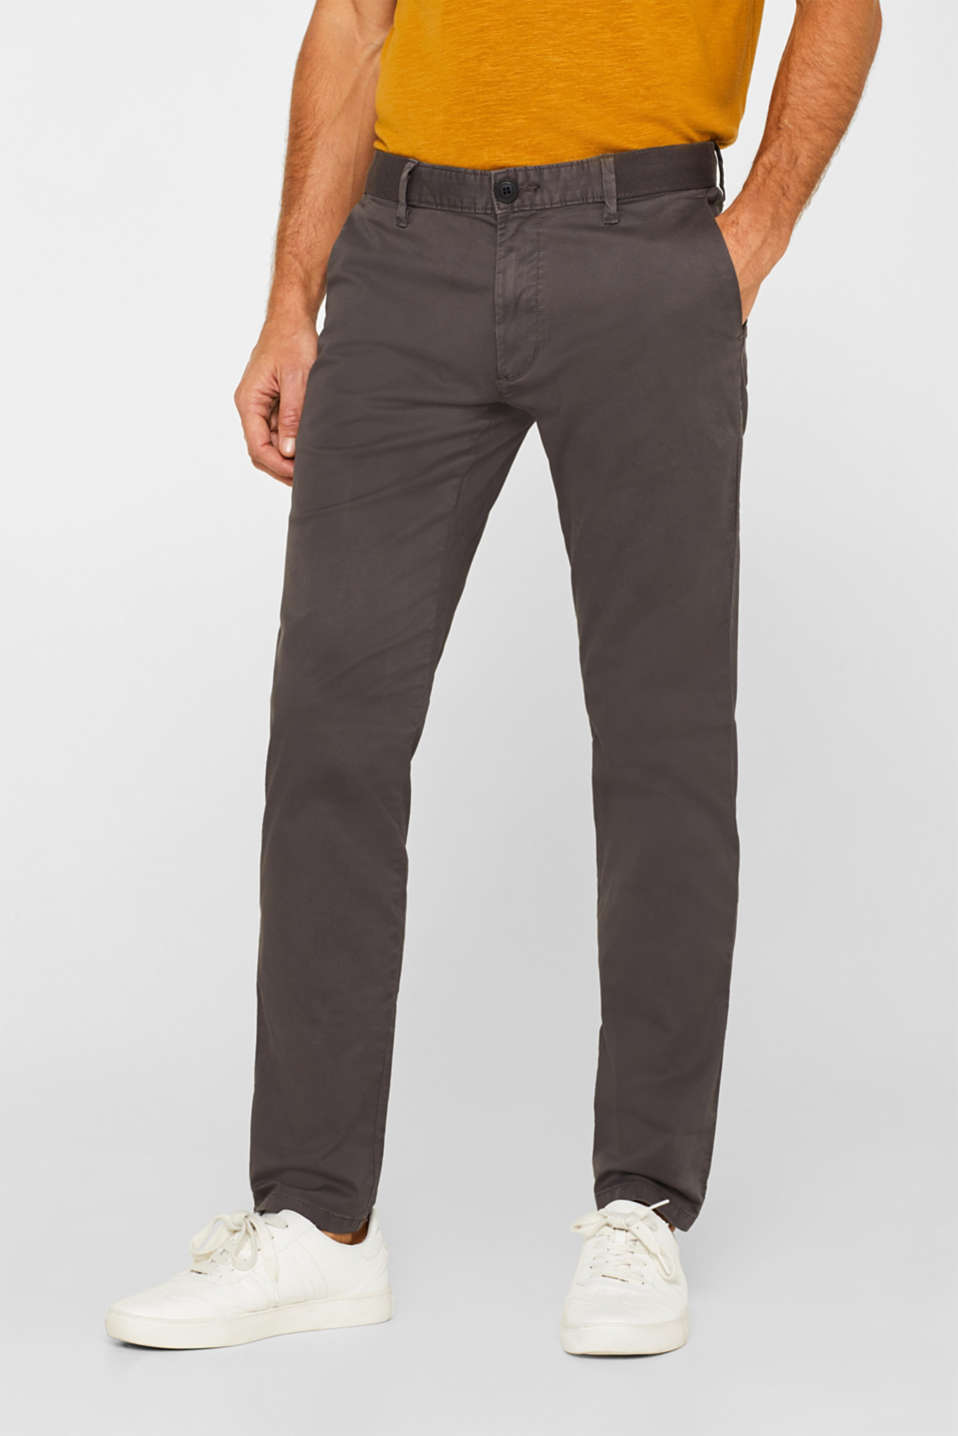 edc - Pantalon super stretch à cordon de serrage